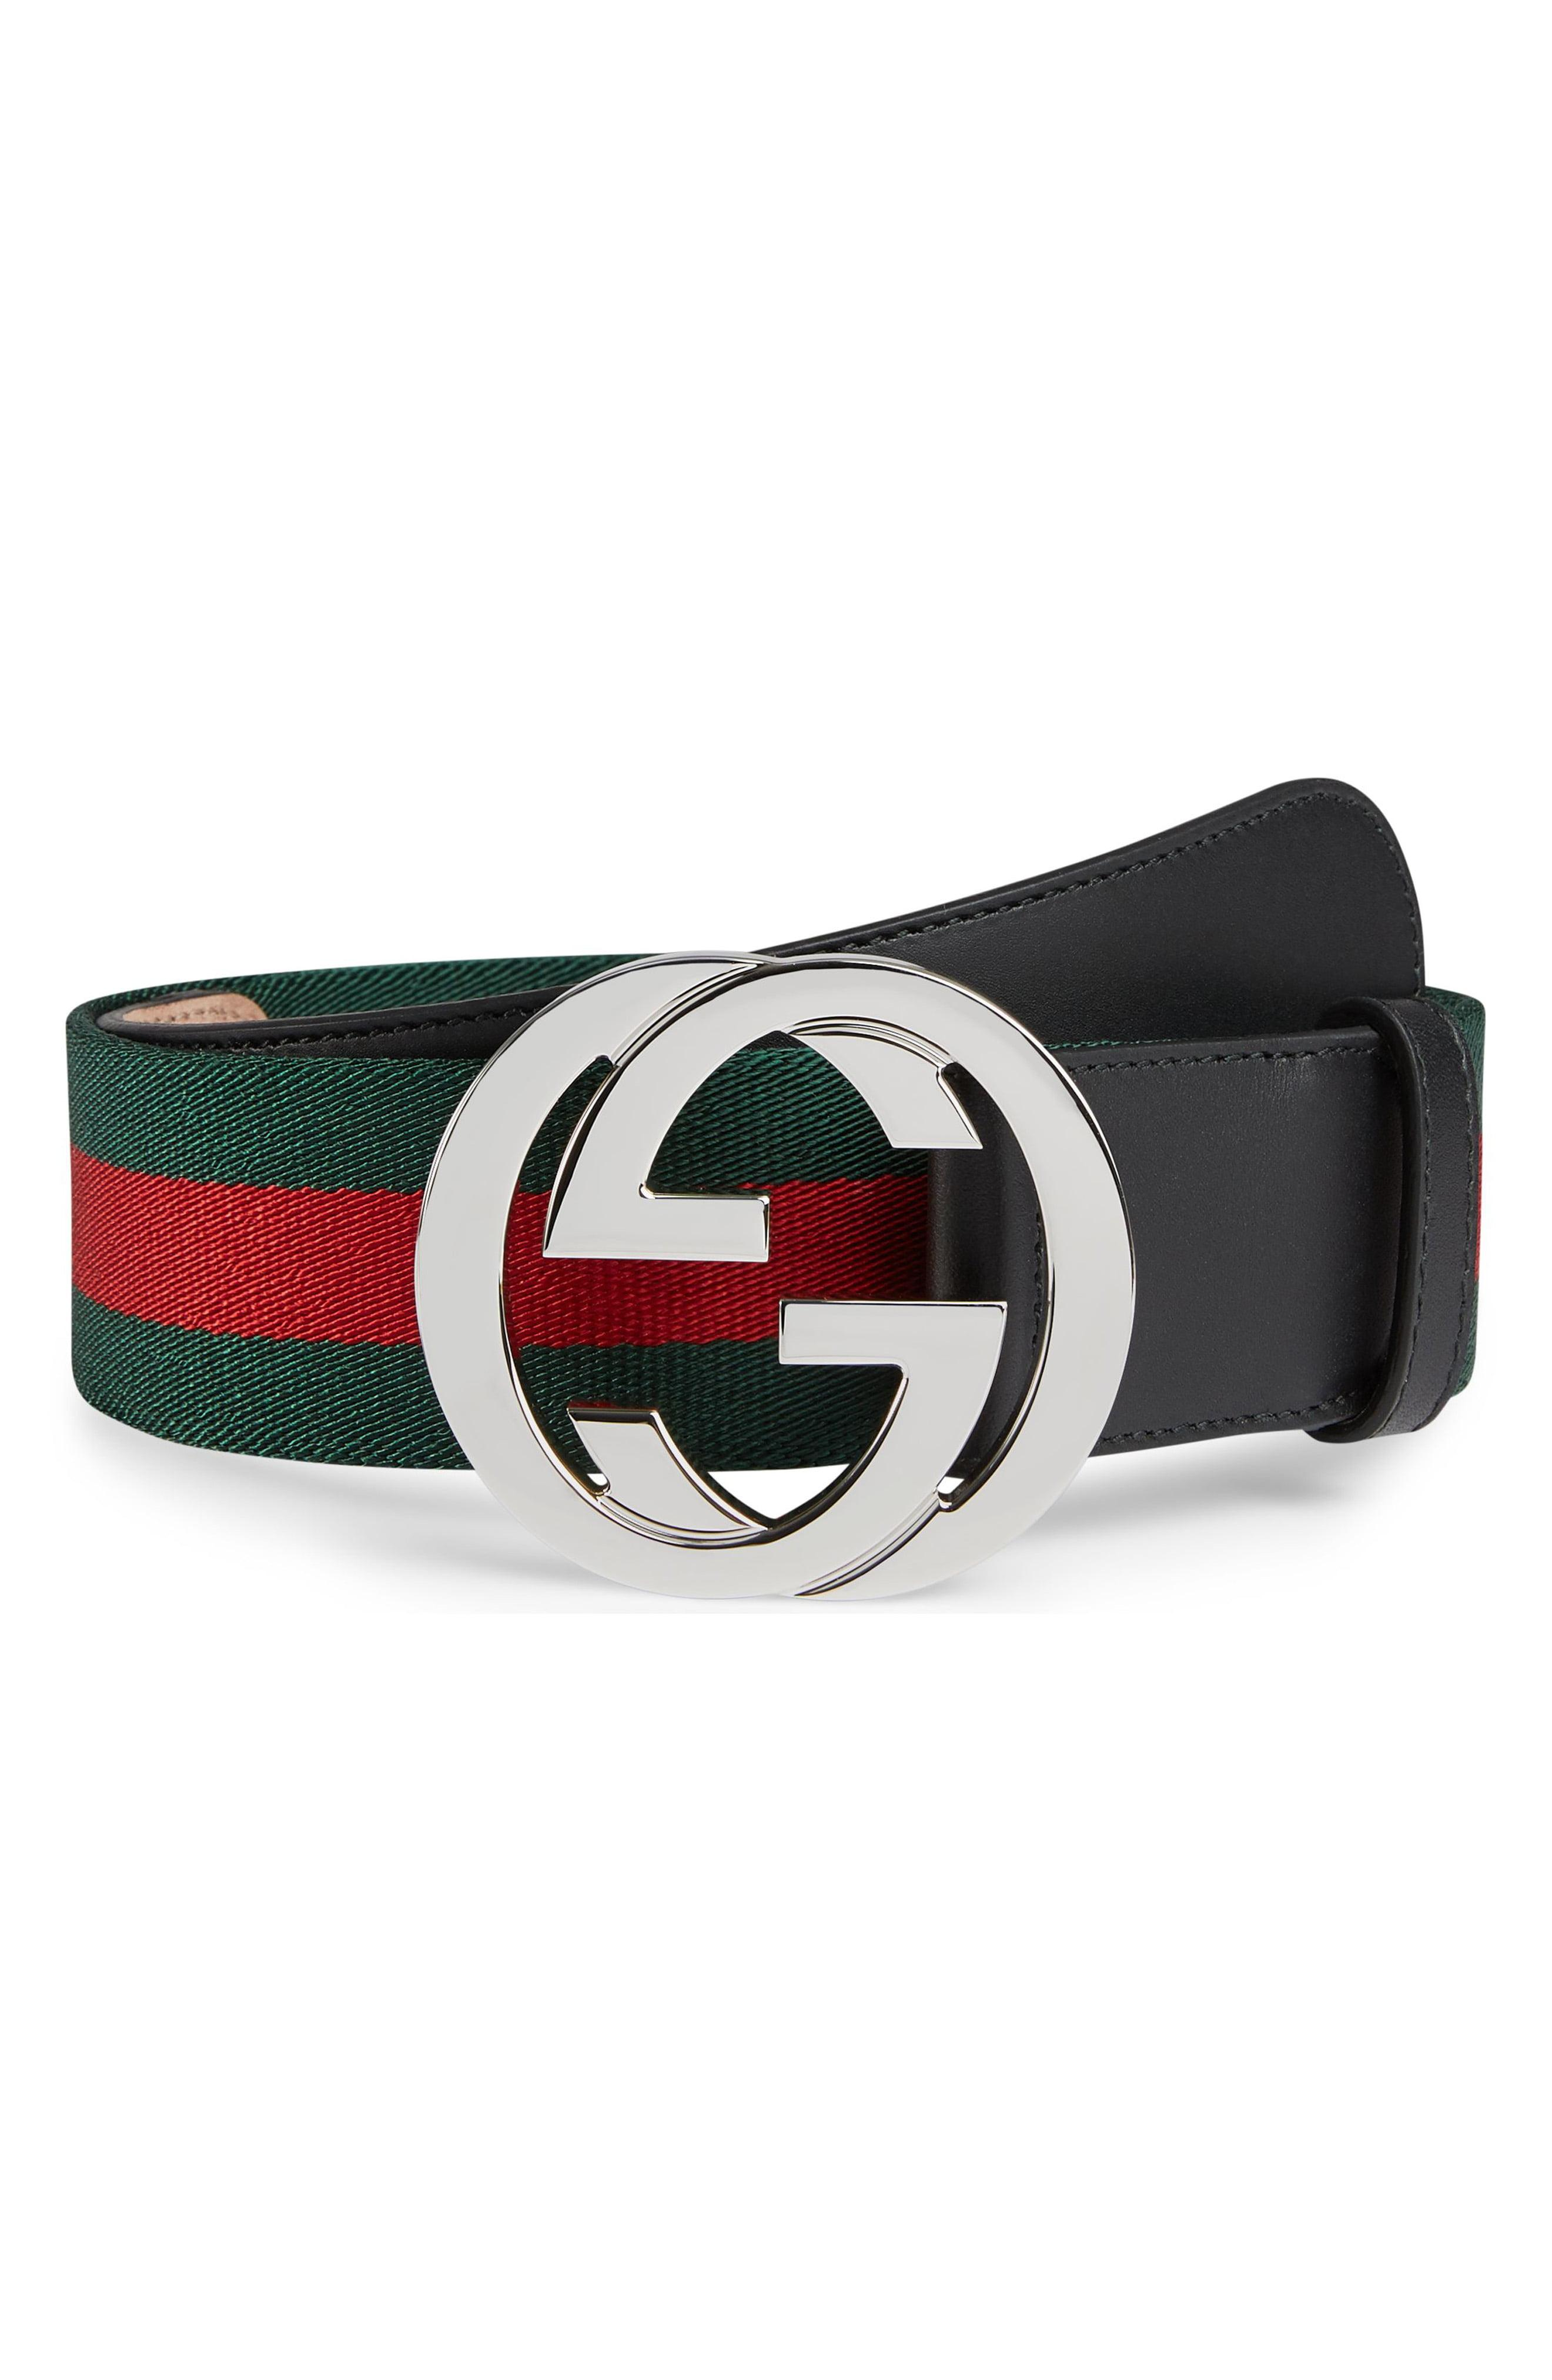 9ddd4b0ee46a Lyst - Gucci Web Belt And Gg Buckle in Black for Men - Save 14%